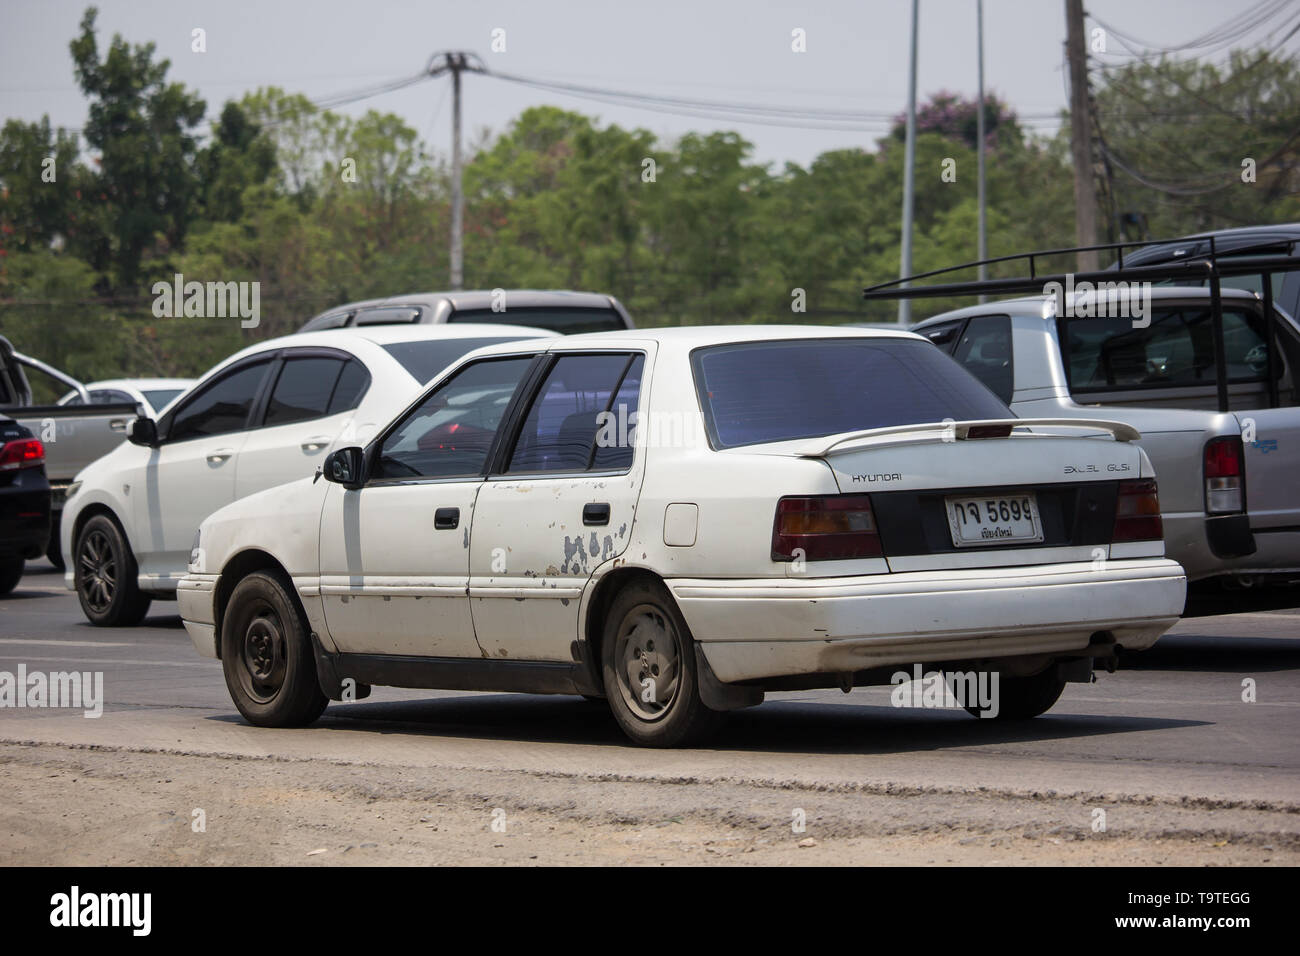 Chiangmai, Thailand - April 30 2019: Private car, Hyundai Elentra. Photo at road no 121 about 8 km from downtown Chiangmai, thailand. - Stock Image